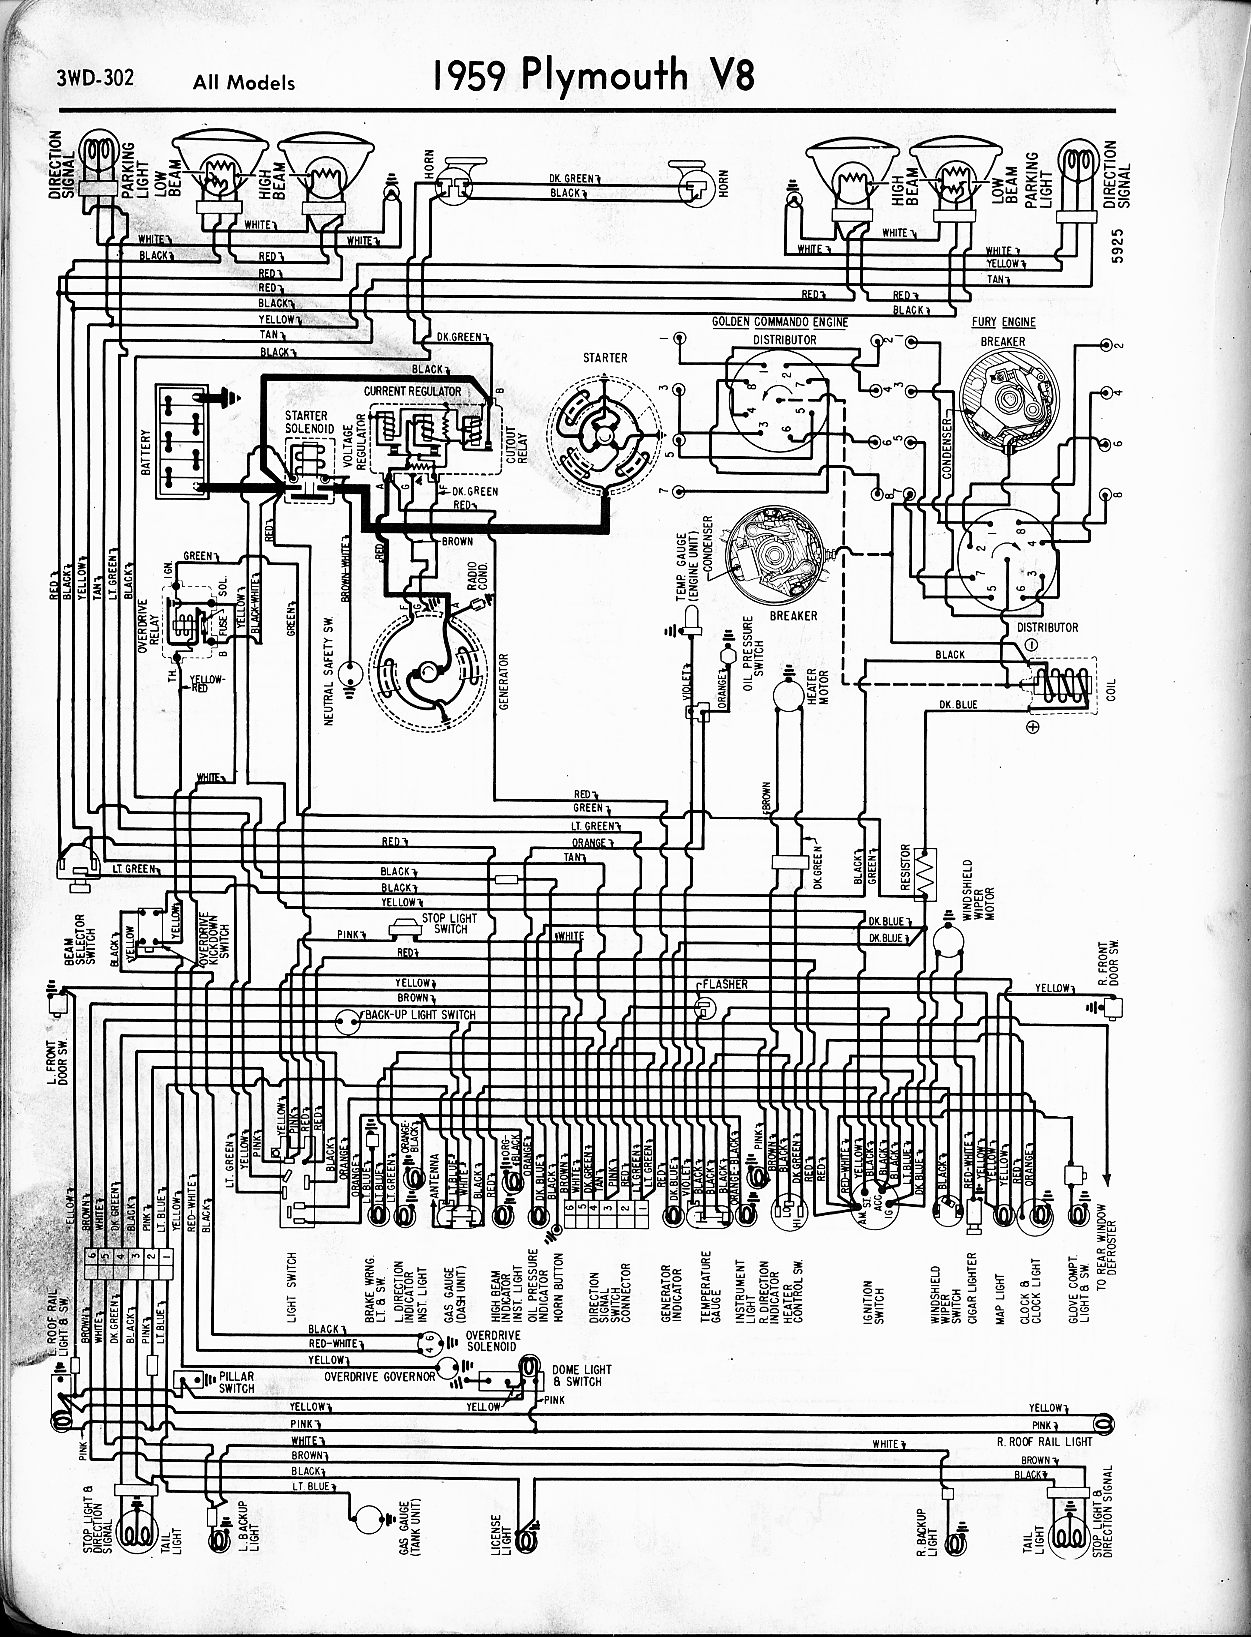 MWire5765 302 1956 1965 plymouth wiring the old car manual project 1953 plymouth wiring diagram at edmiracle.co